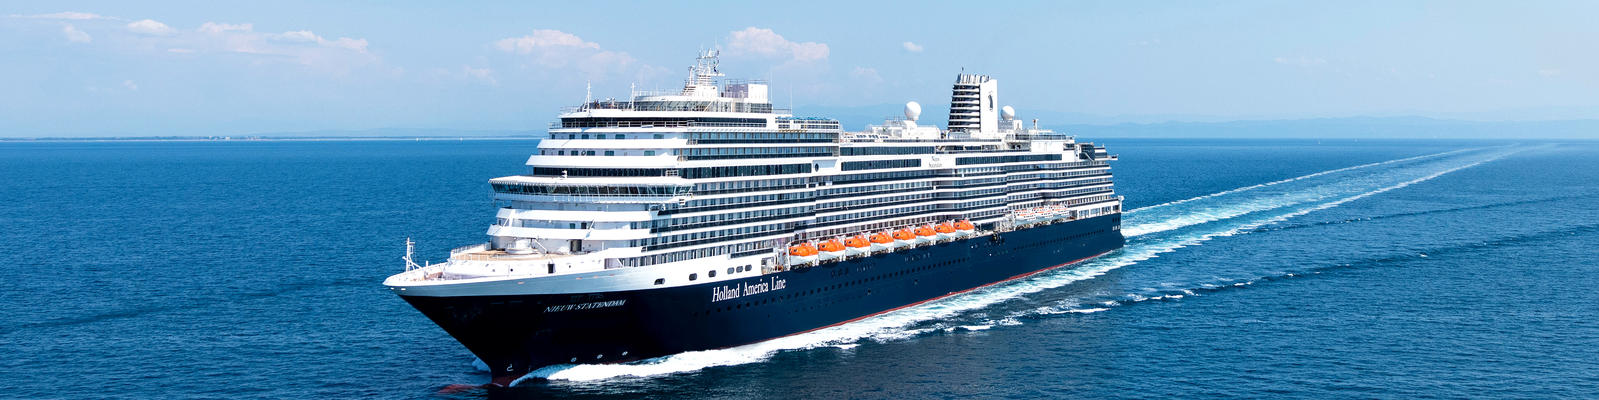 5 things you ll love about holland america s nieuw statendam cruise ship